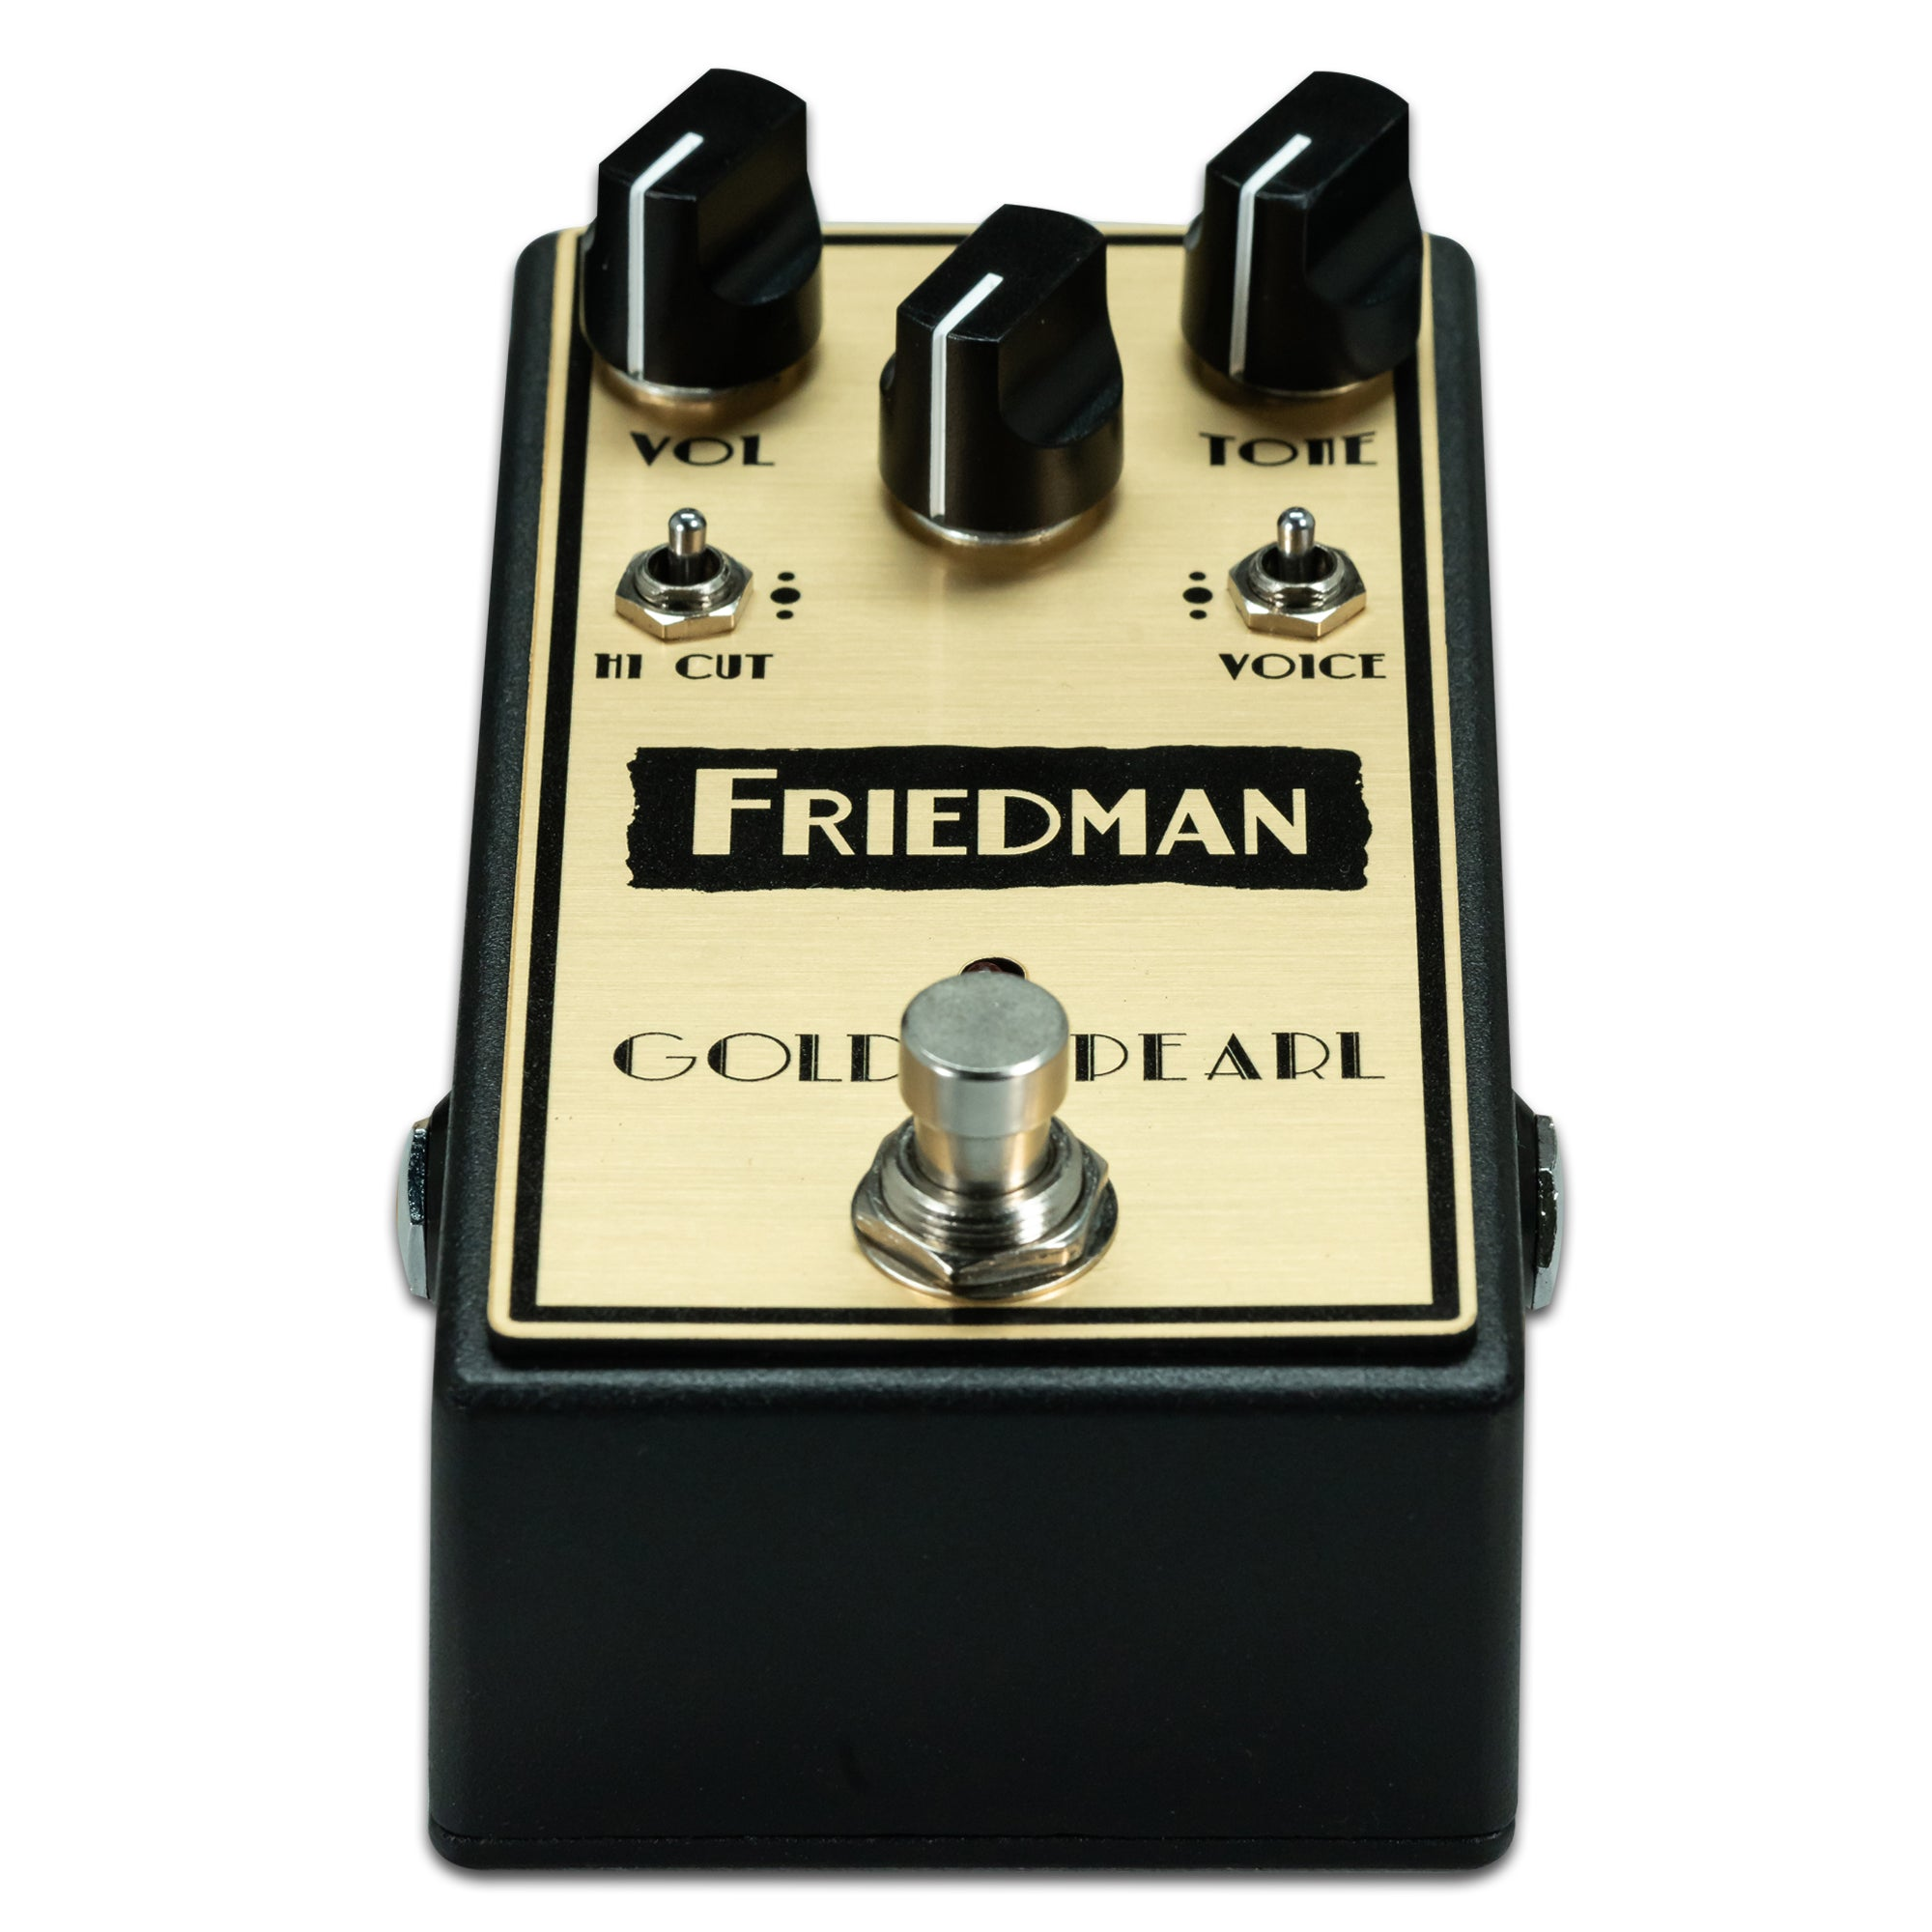 Friedman Golden Pearl